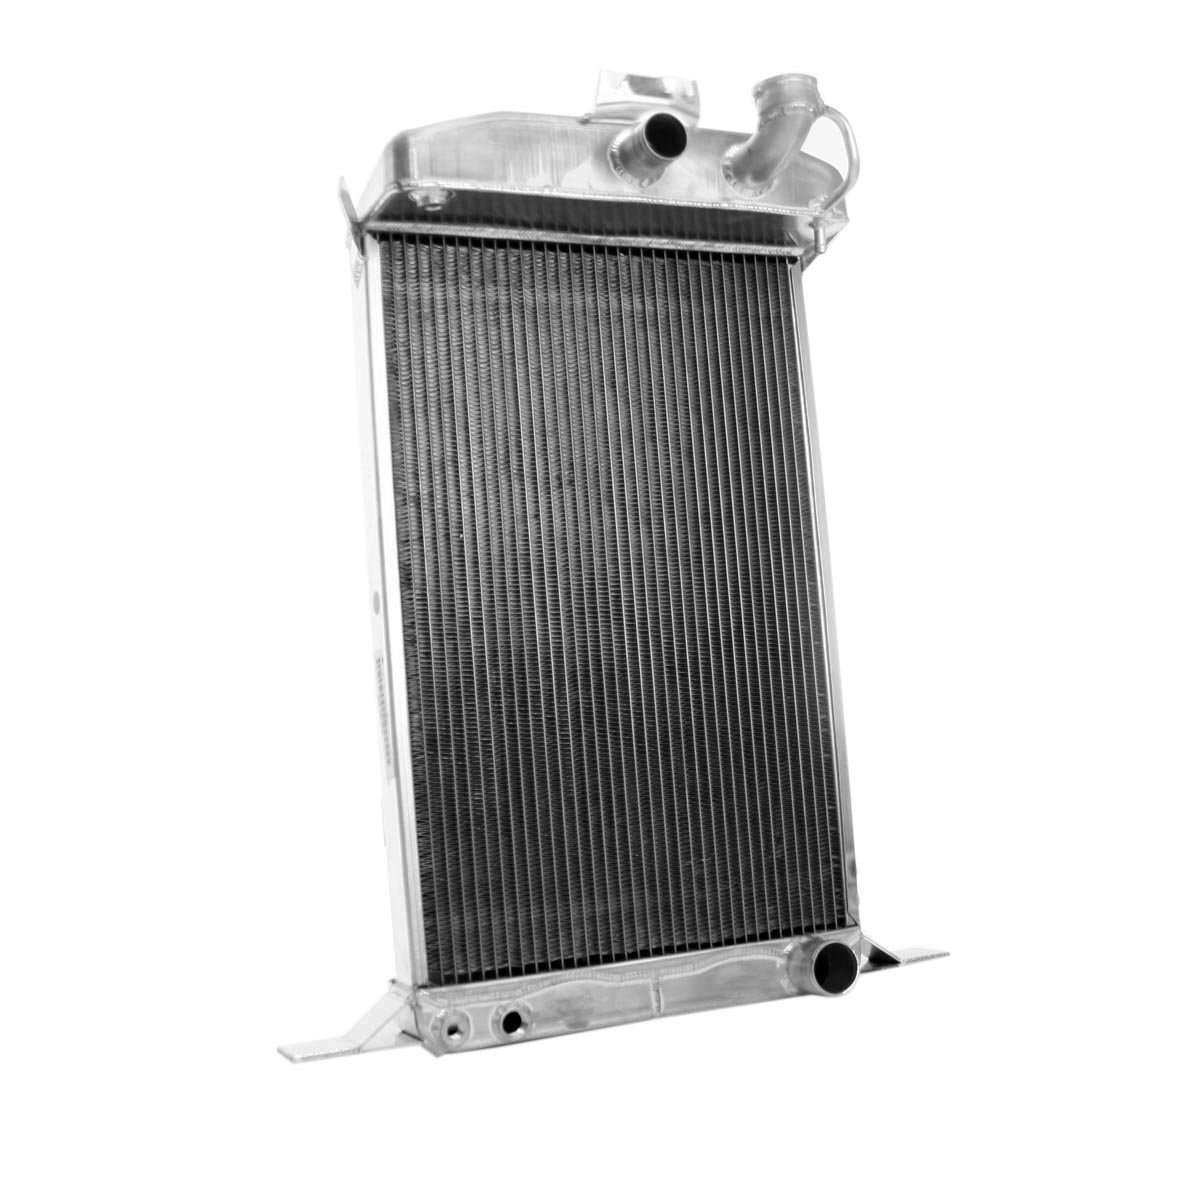 1939 Ford  Griffin Aluminum Radiator - Part Number 7-00086